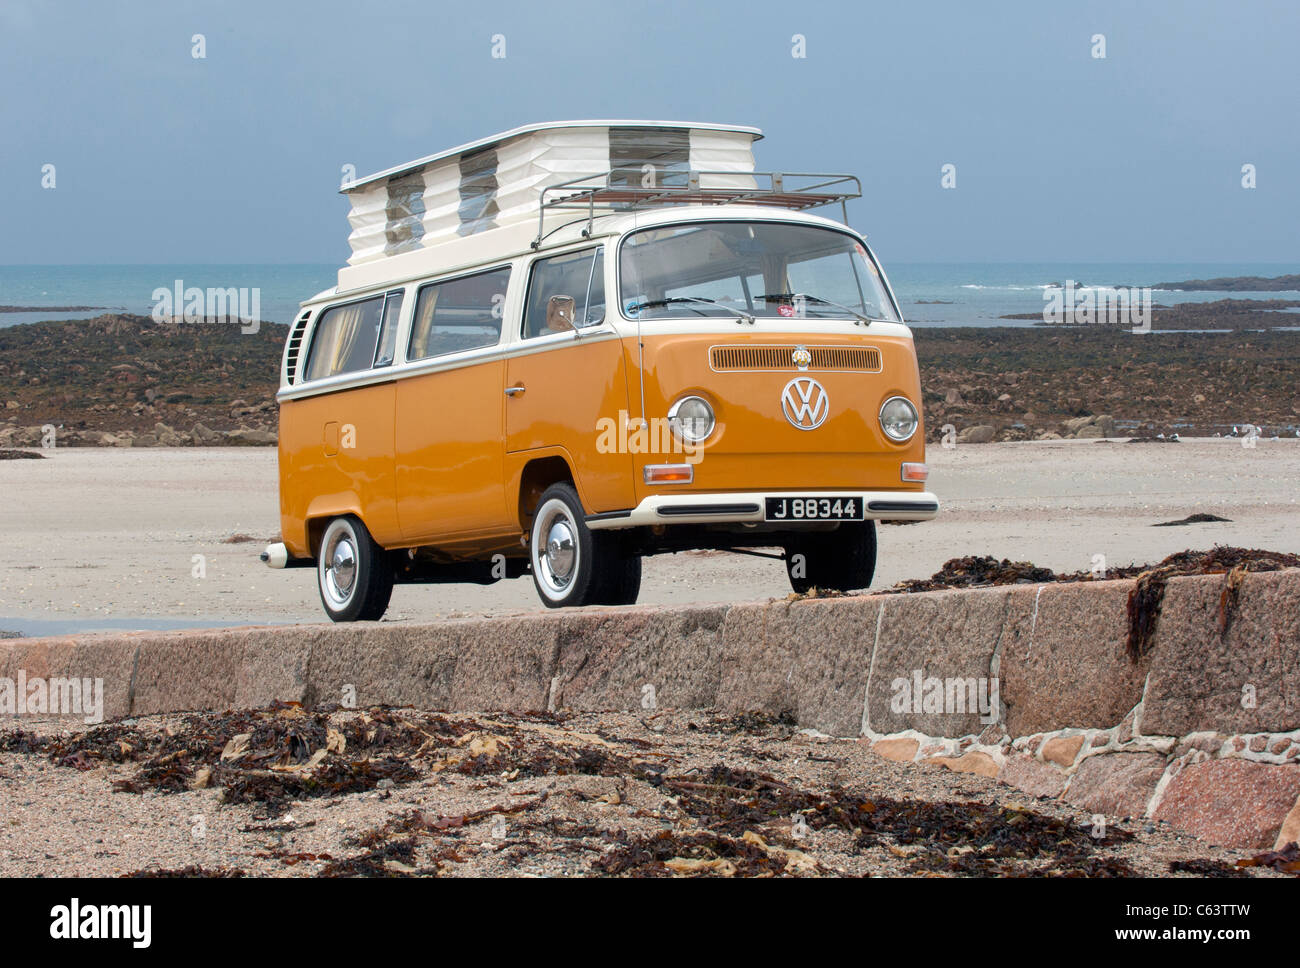 Stock Photo - VW Volkswagen Bay Window Devon Cu0026er Van Classic Air Cooled Rear Engined Van Pop Up Roof Raised Beach Orange White & Roof Camper u0026